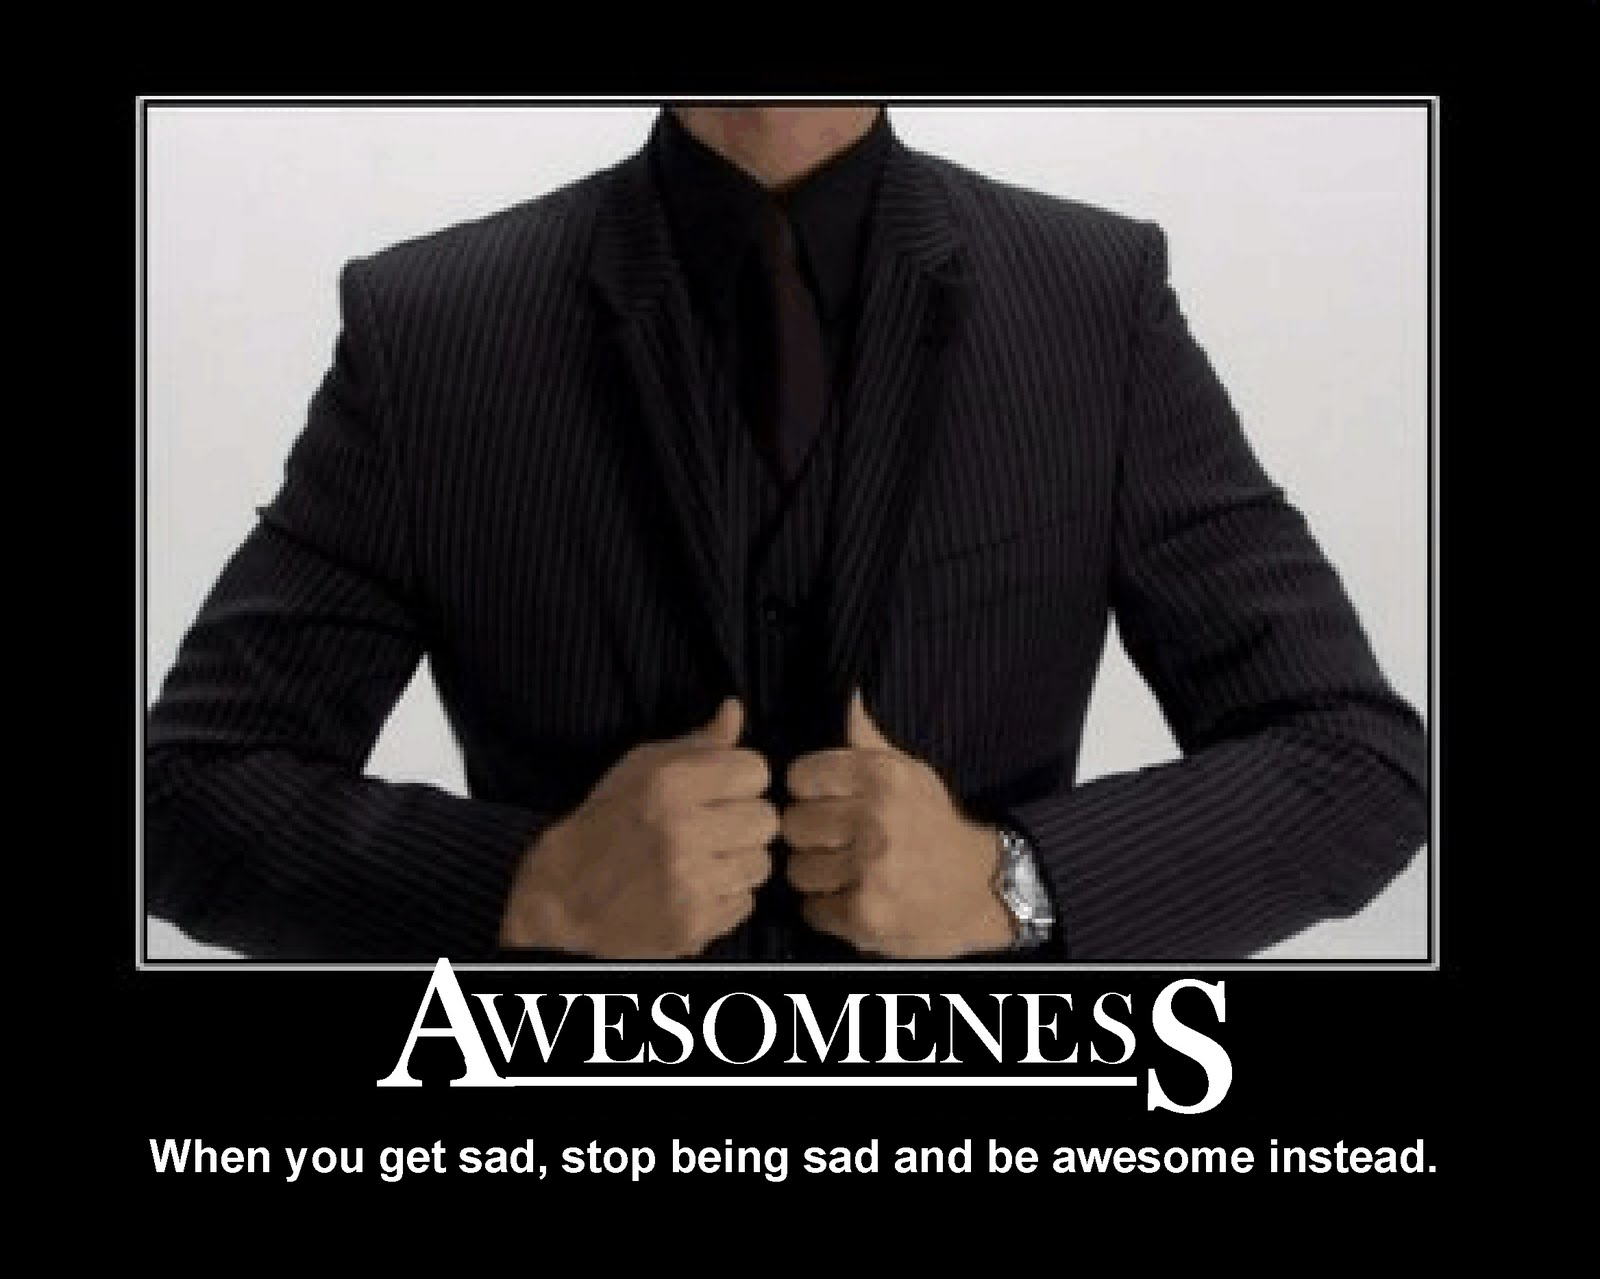 The Word Awesomeness